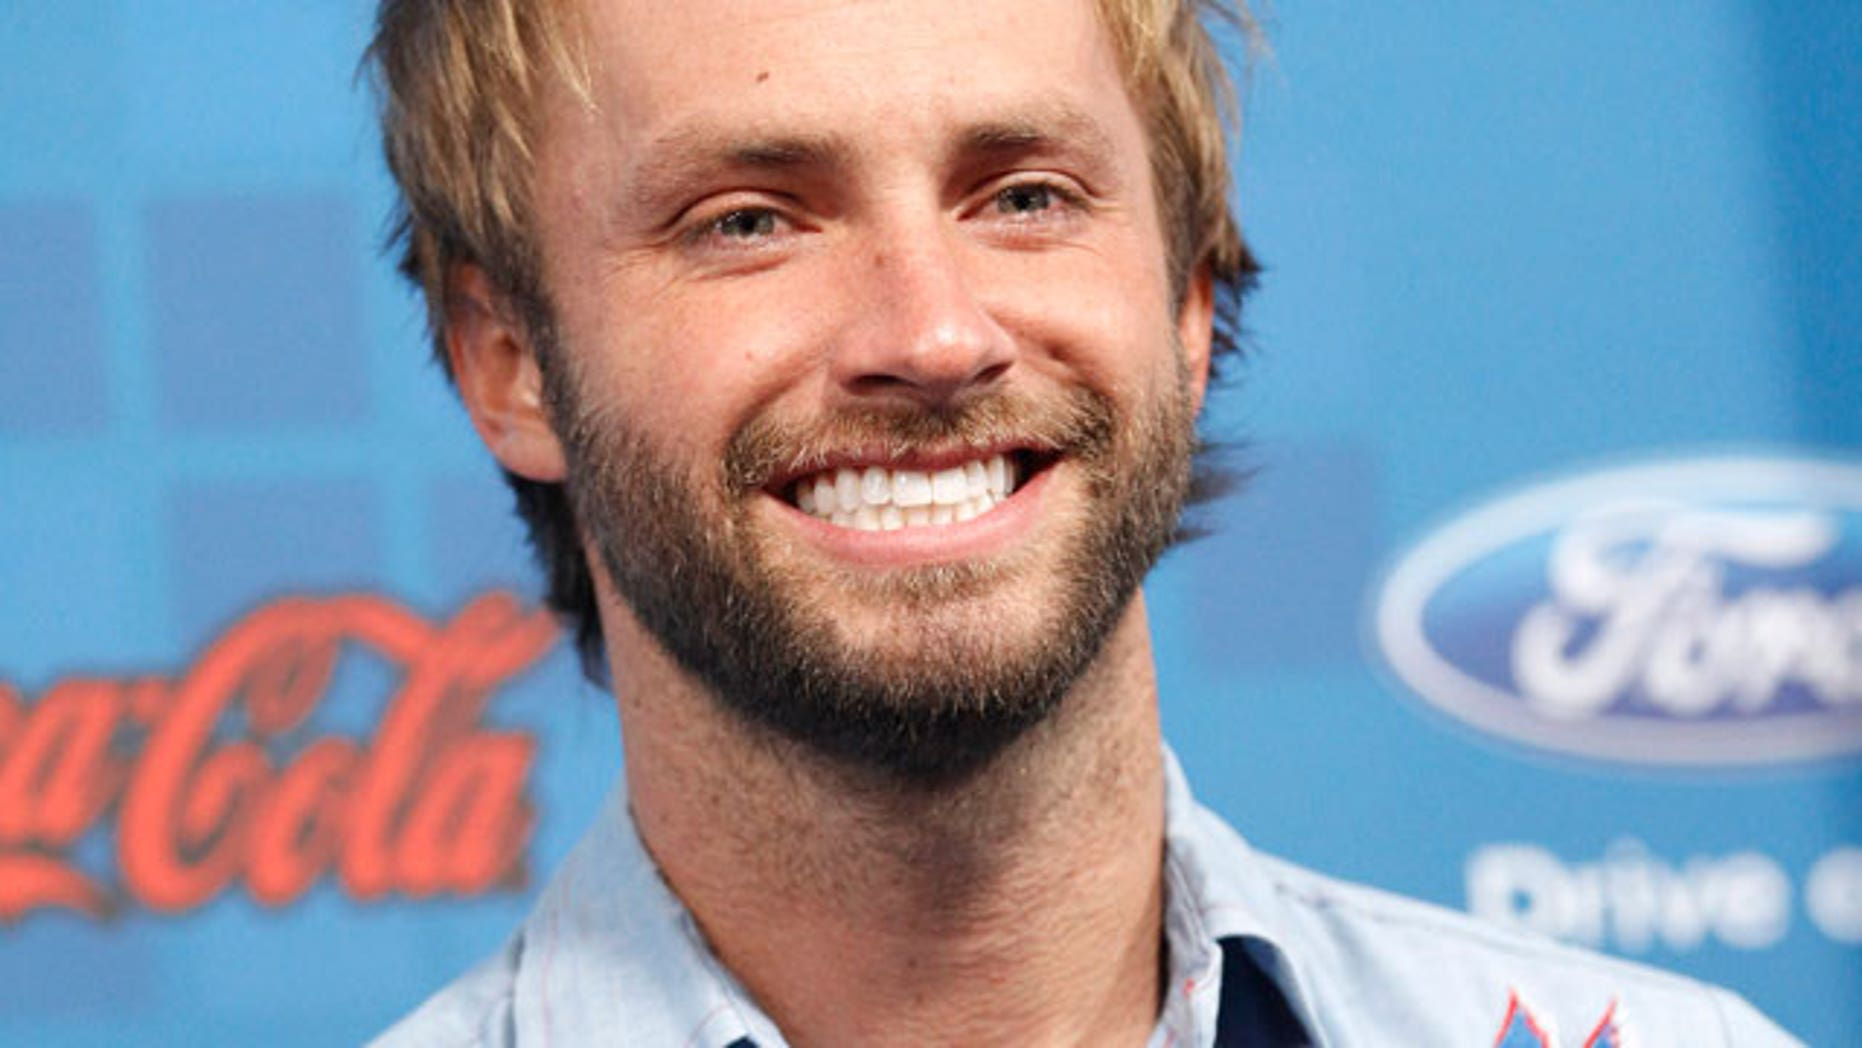 Paul McDonald was booted off of 'American Idol' last night. (Reuters)